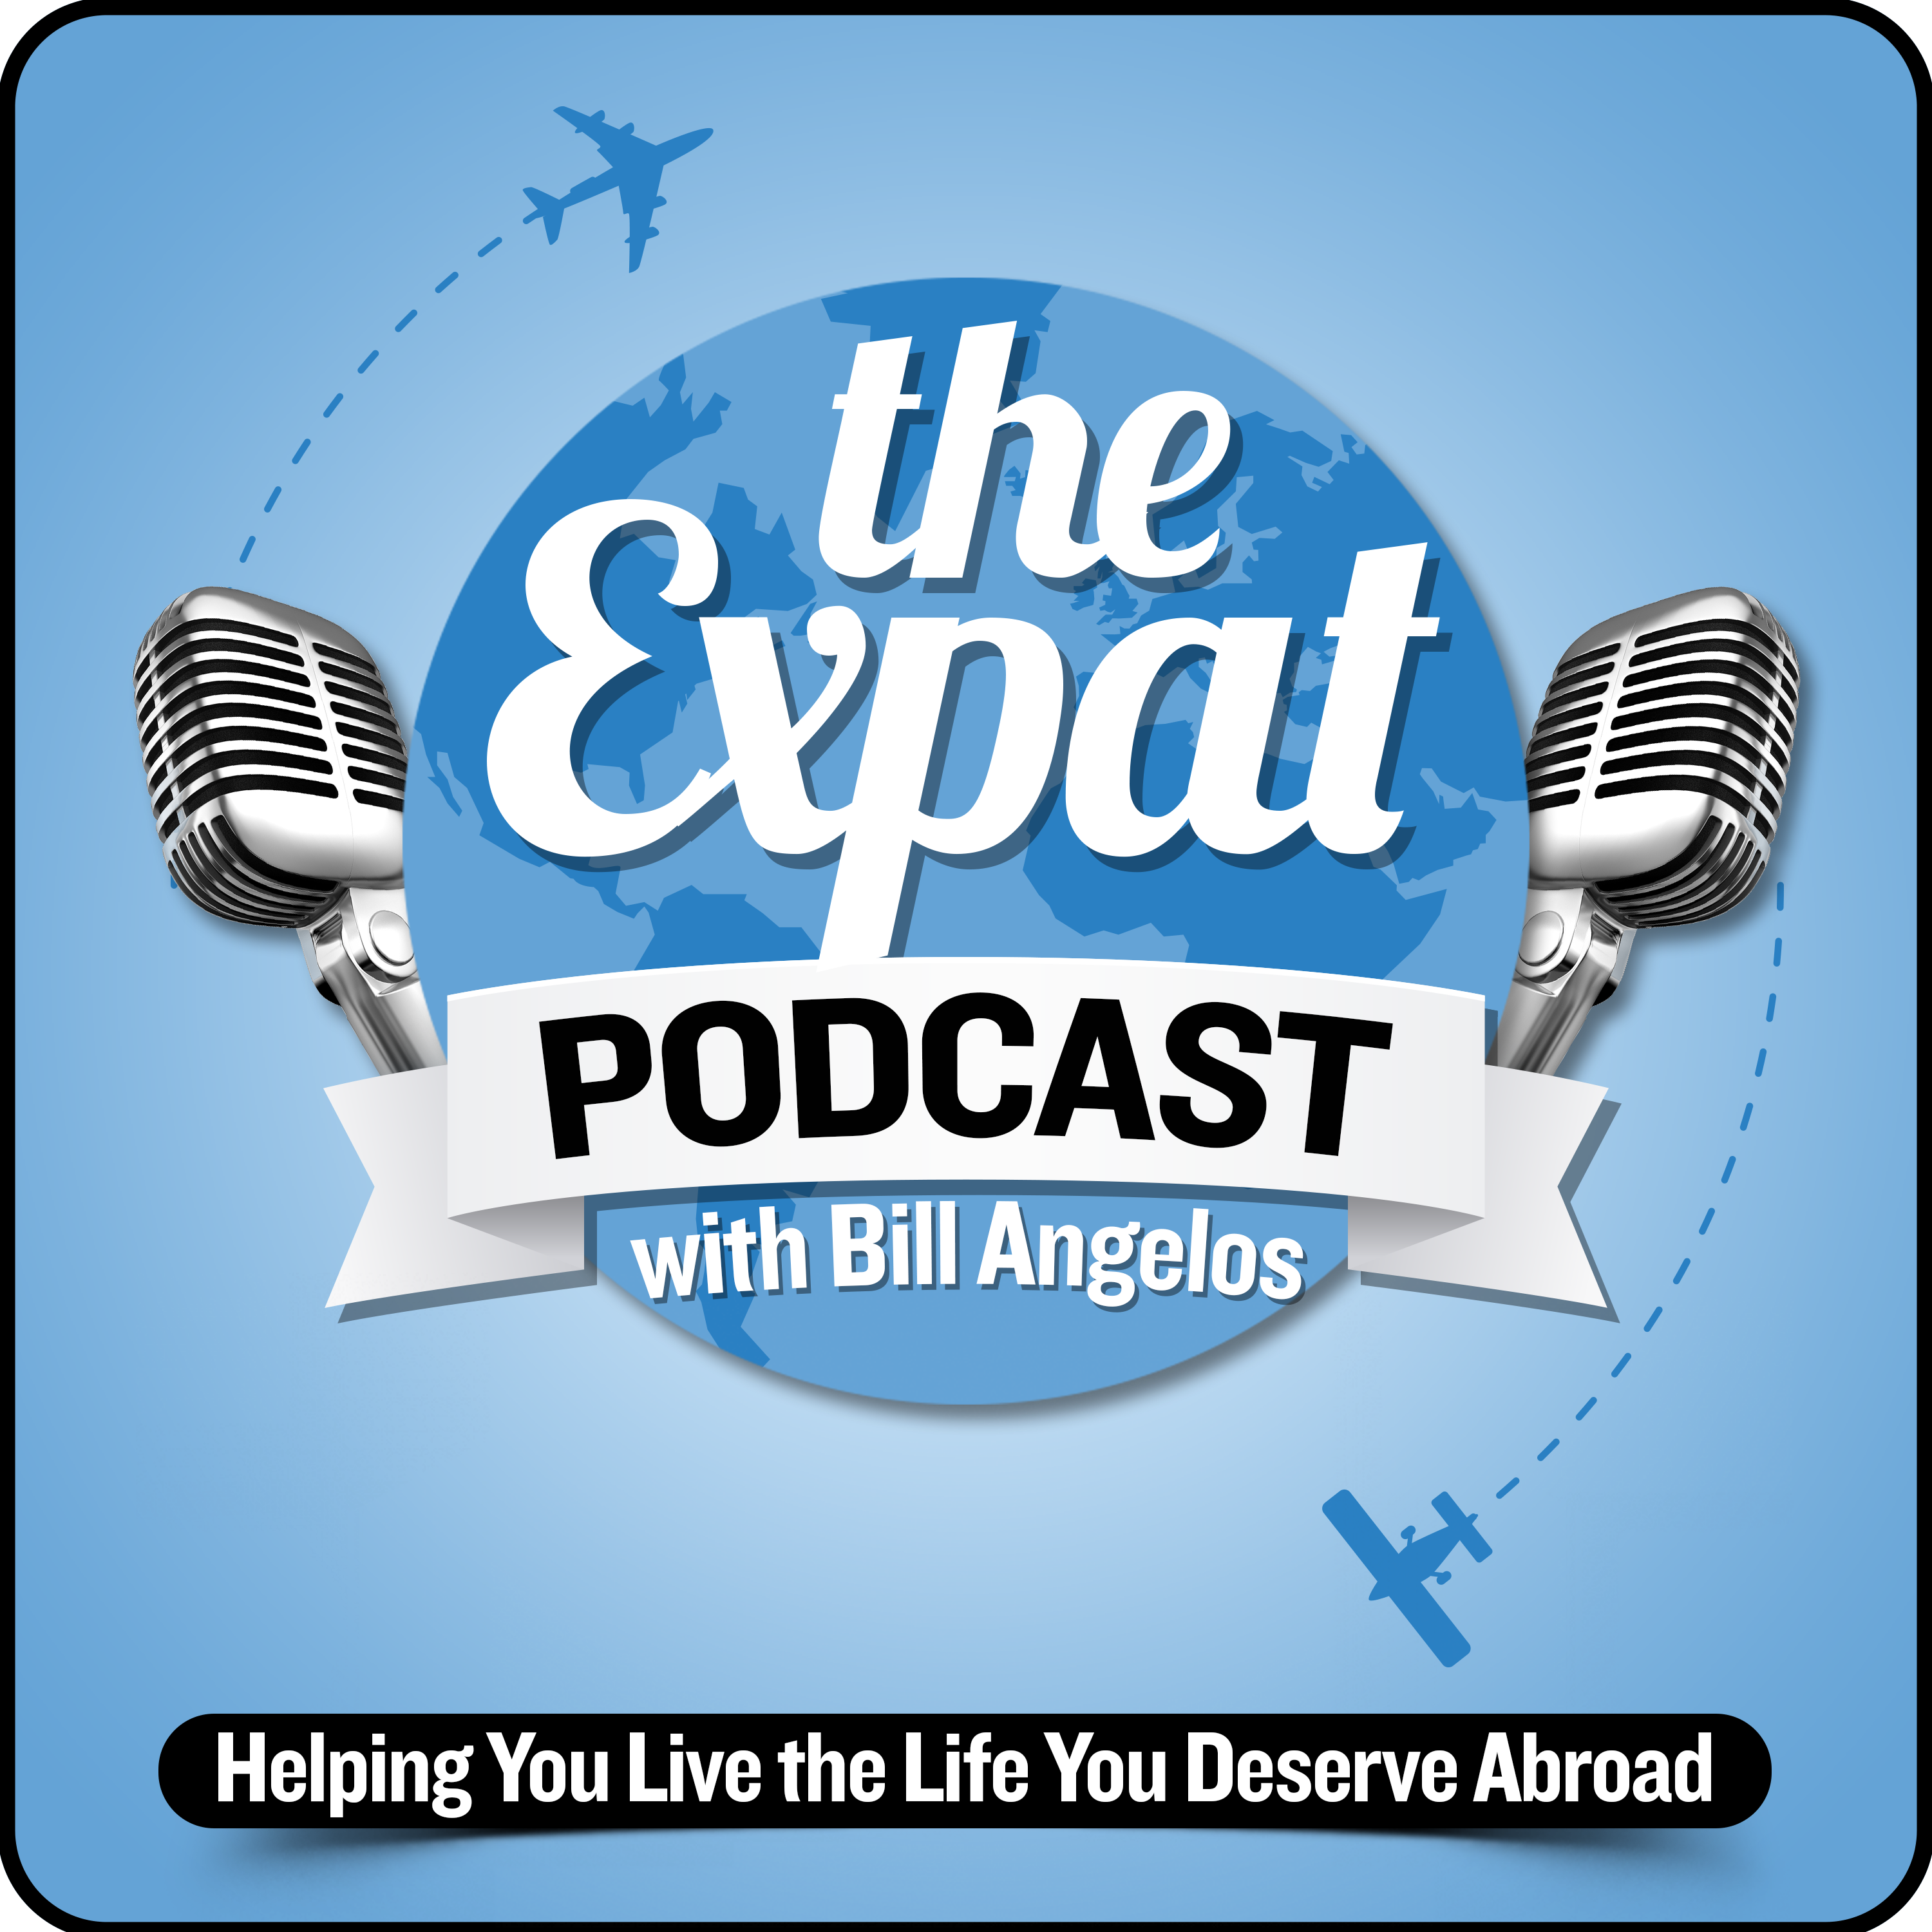 the-Expat Podcast show image